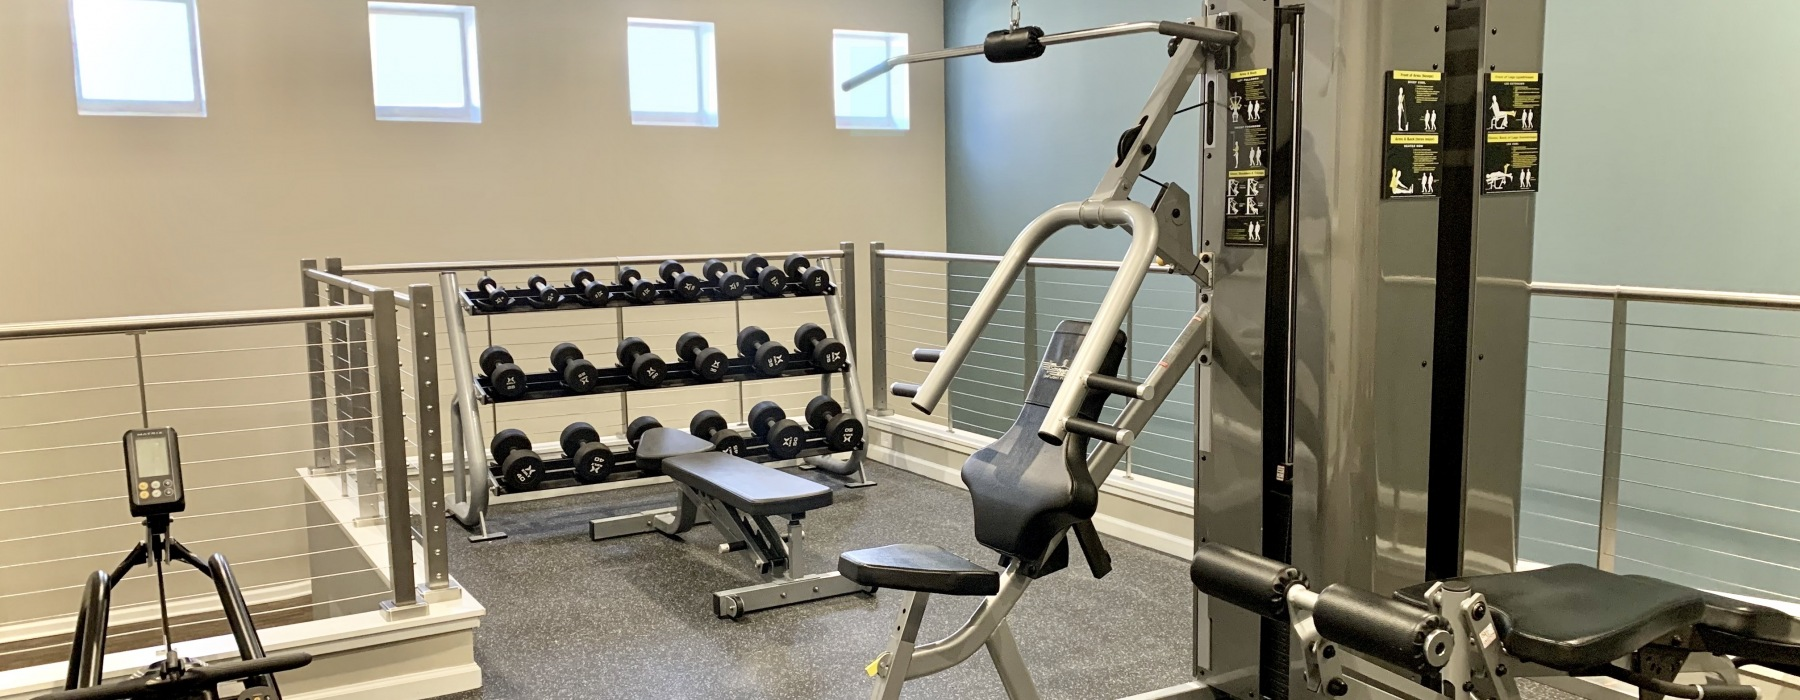 Gym with weights and fitness equipment